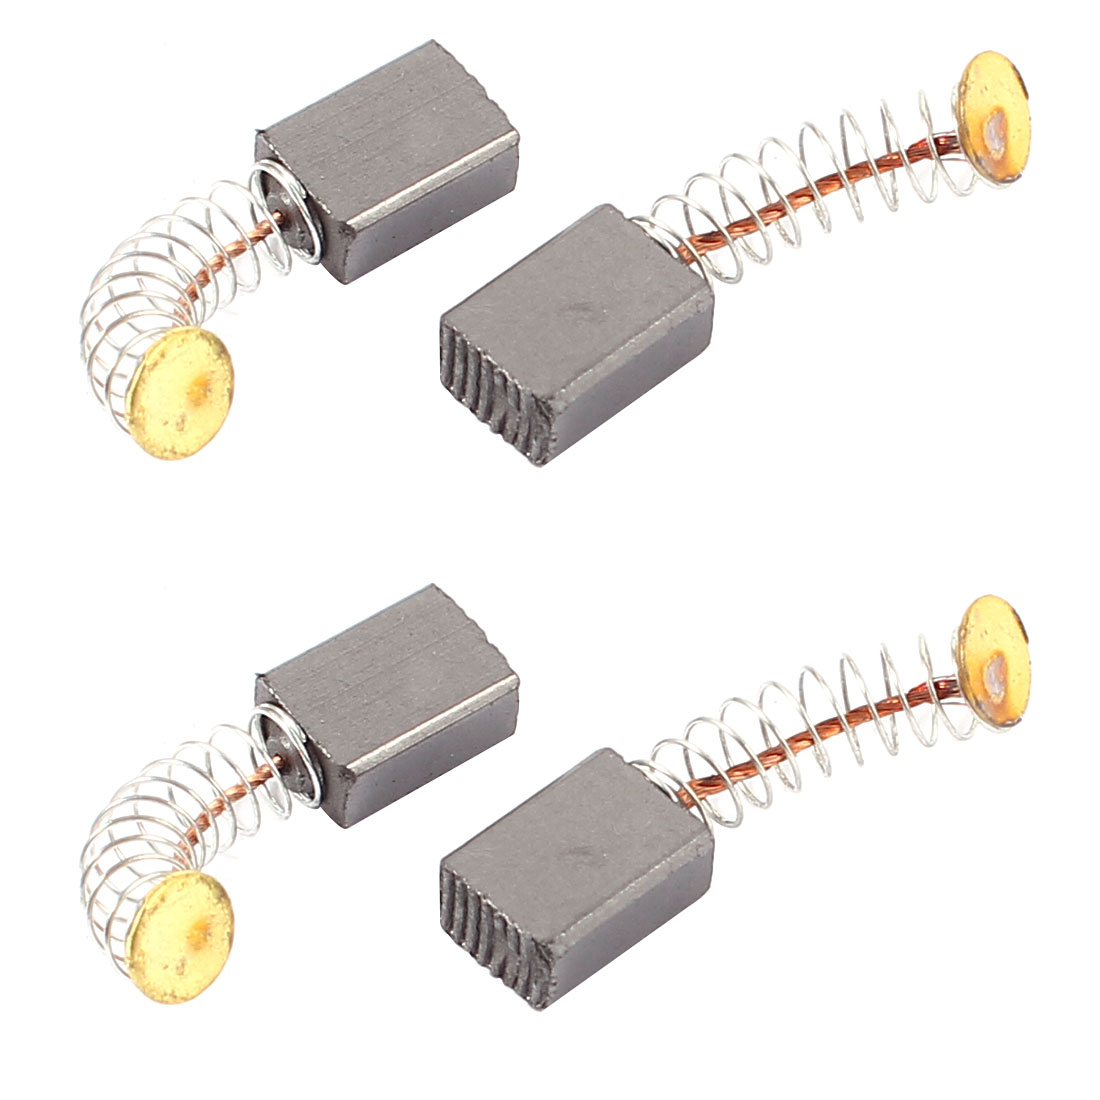 Dmiotech 4 Pcs Carbon Electric Motor Brushes 11Mm X 8Mm X 5Mm For  Drill Screwdriver 20pcs 5x10x19mm electric motor graphite carbon brushes springs